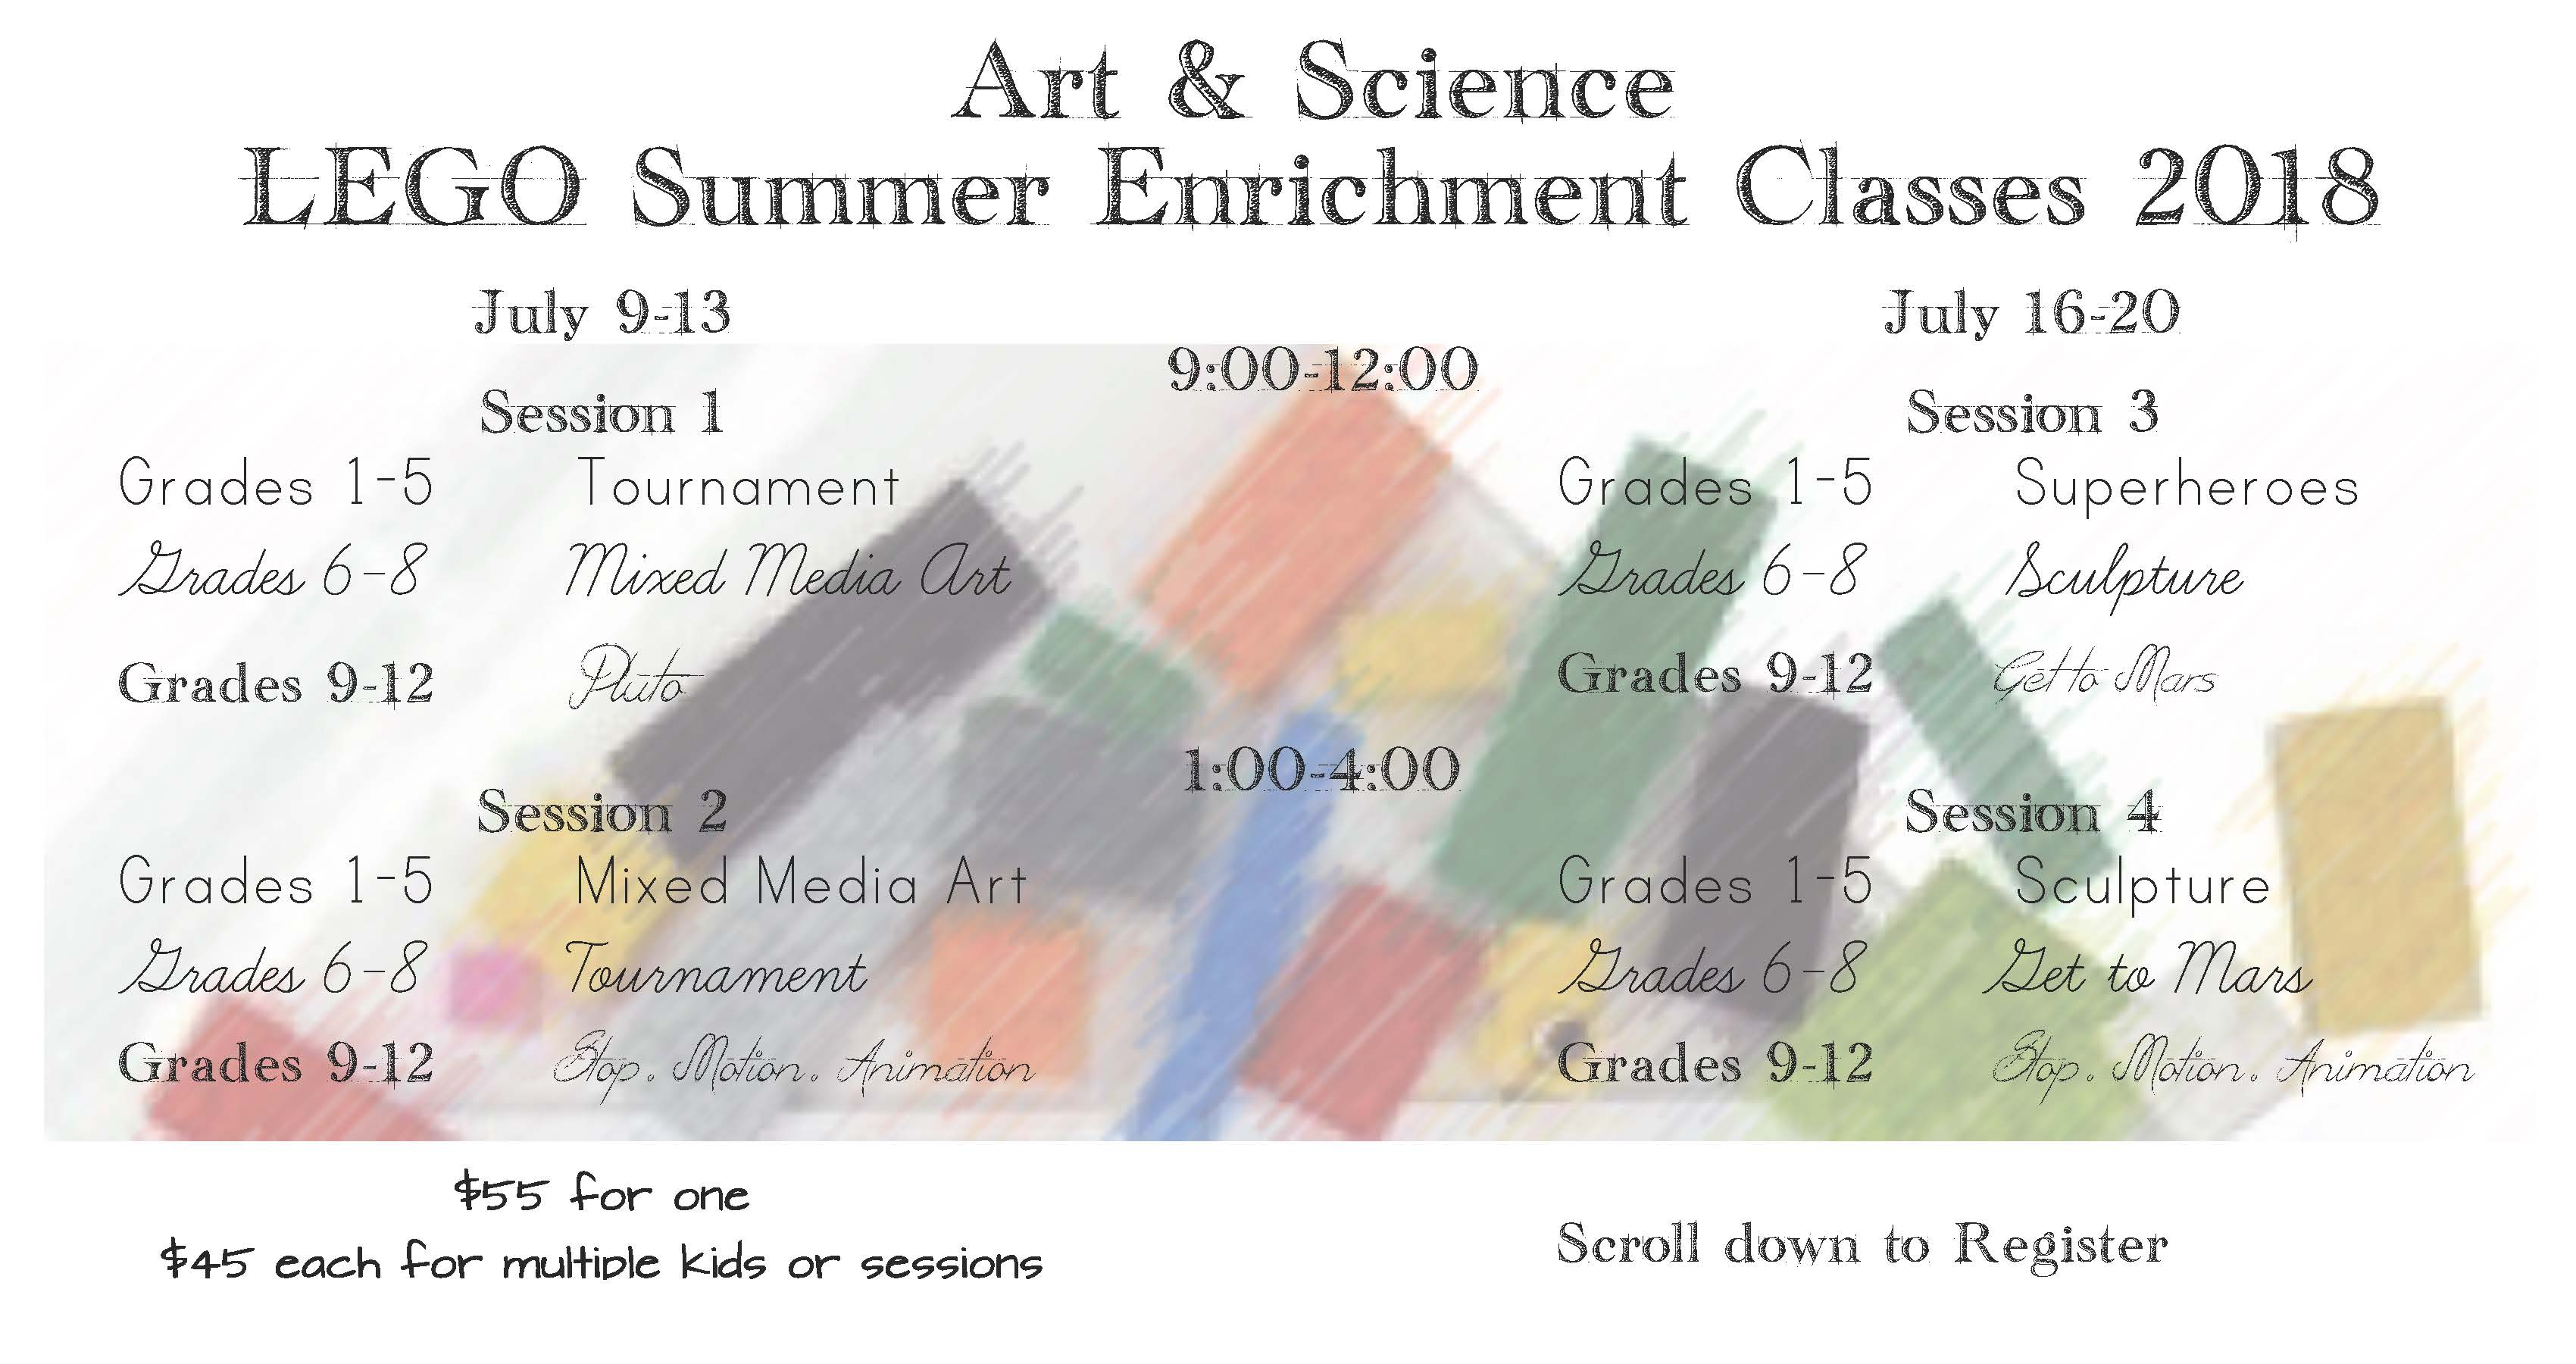 Lego Summer Enrichment